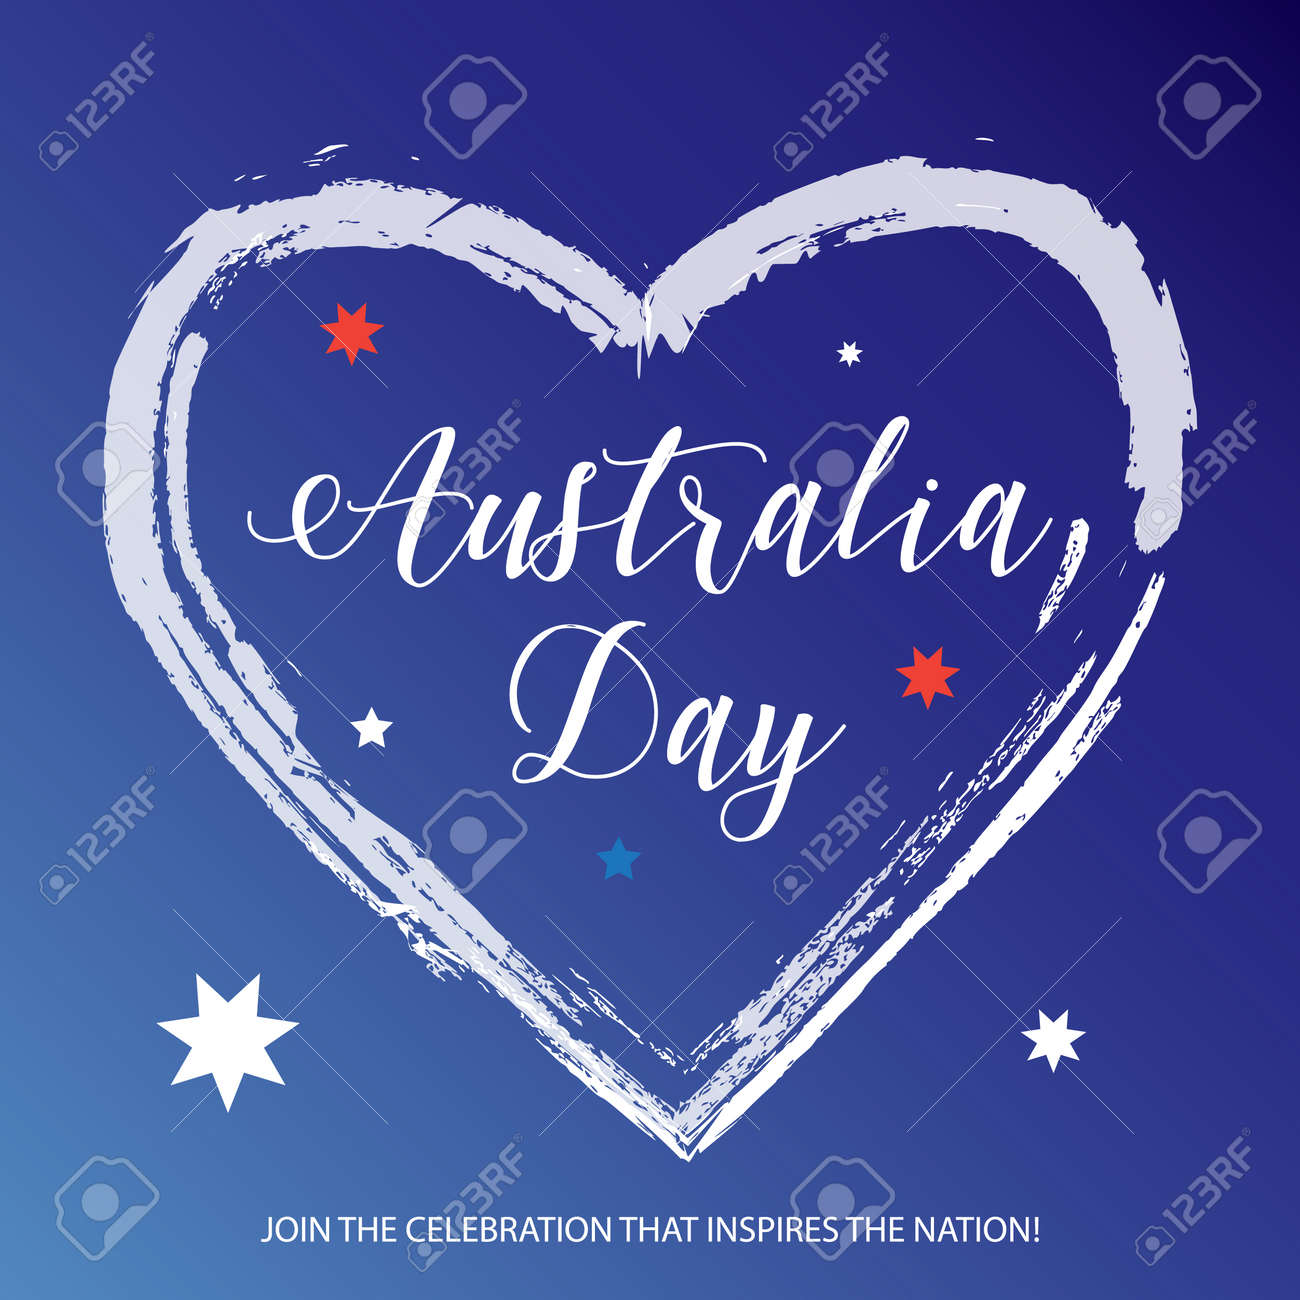 Australia day 26 january poster with lettering heart shape on australia day 26 january poster with lettering heart shape on australian flag color background m4hsunfo